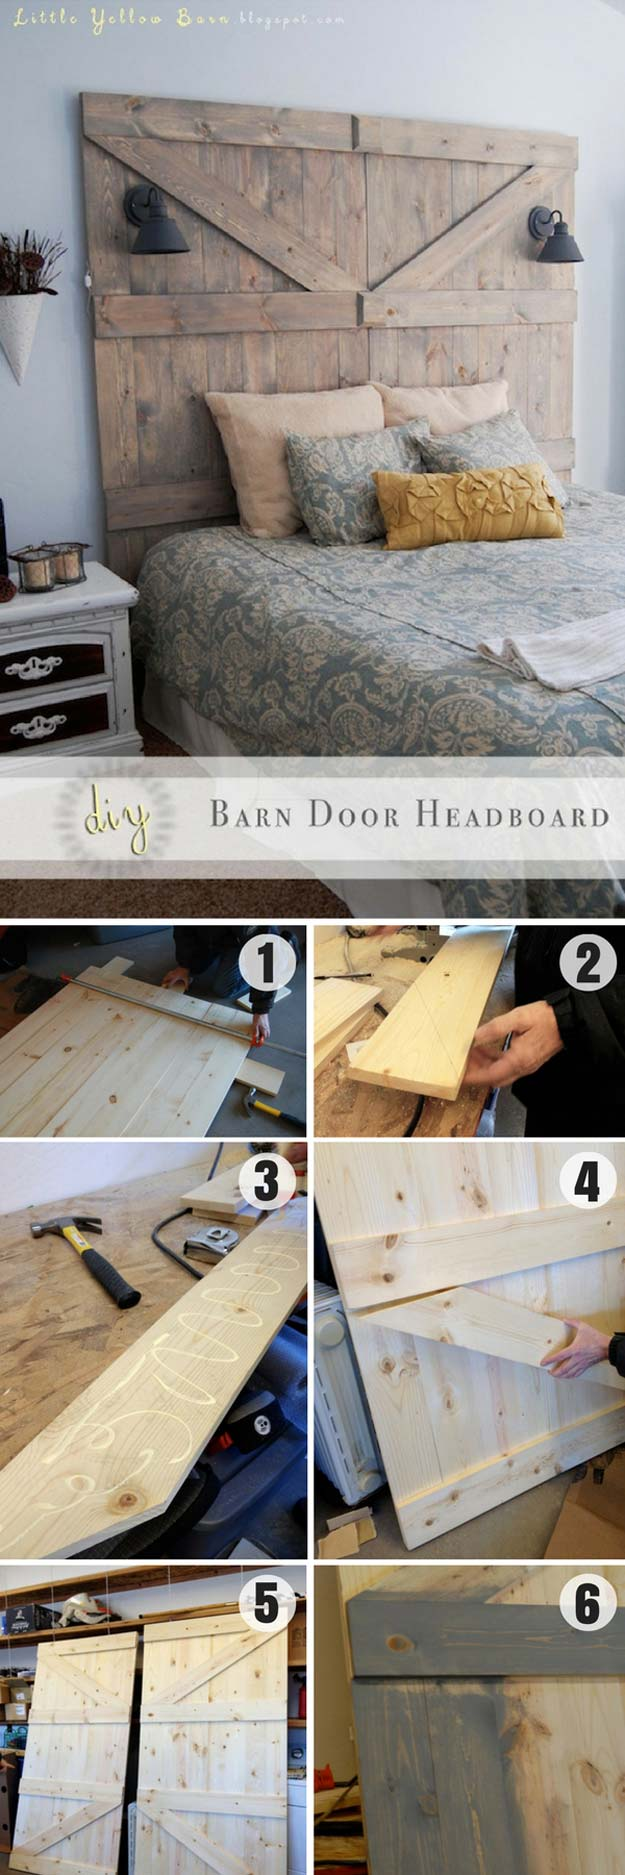 Cool DIY Ideas for Your Bed - DIY Barn Door Headboard - Fun Bedding, Pillows, Blankets, Home Decor and Crafts to Make Your Bedroom Awesome - Easy Step by Step Tutorials for Making A T-Shirt Pillow, Knit Throws, Fuzzy and Furry Warm Blankets and Handmade DYI Bedding, Sheets, Bedskirts and Shams